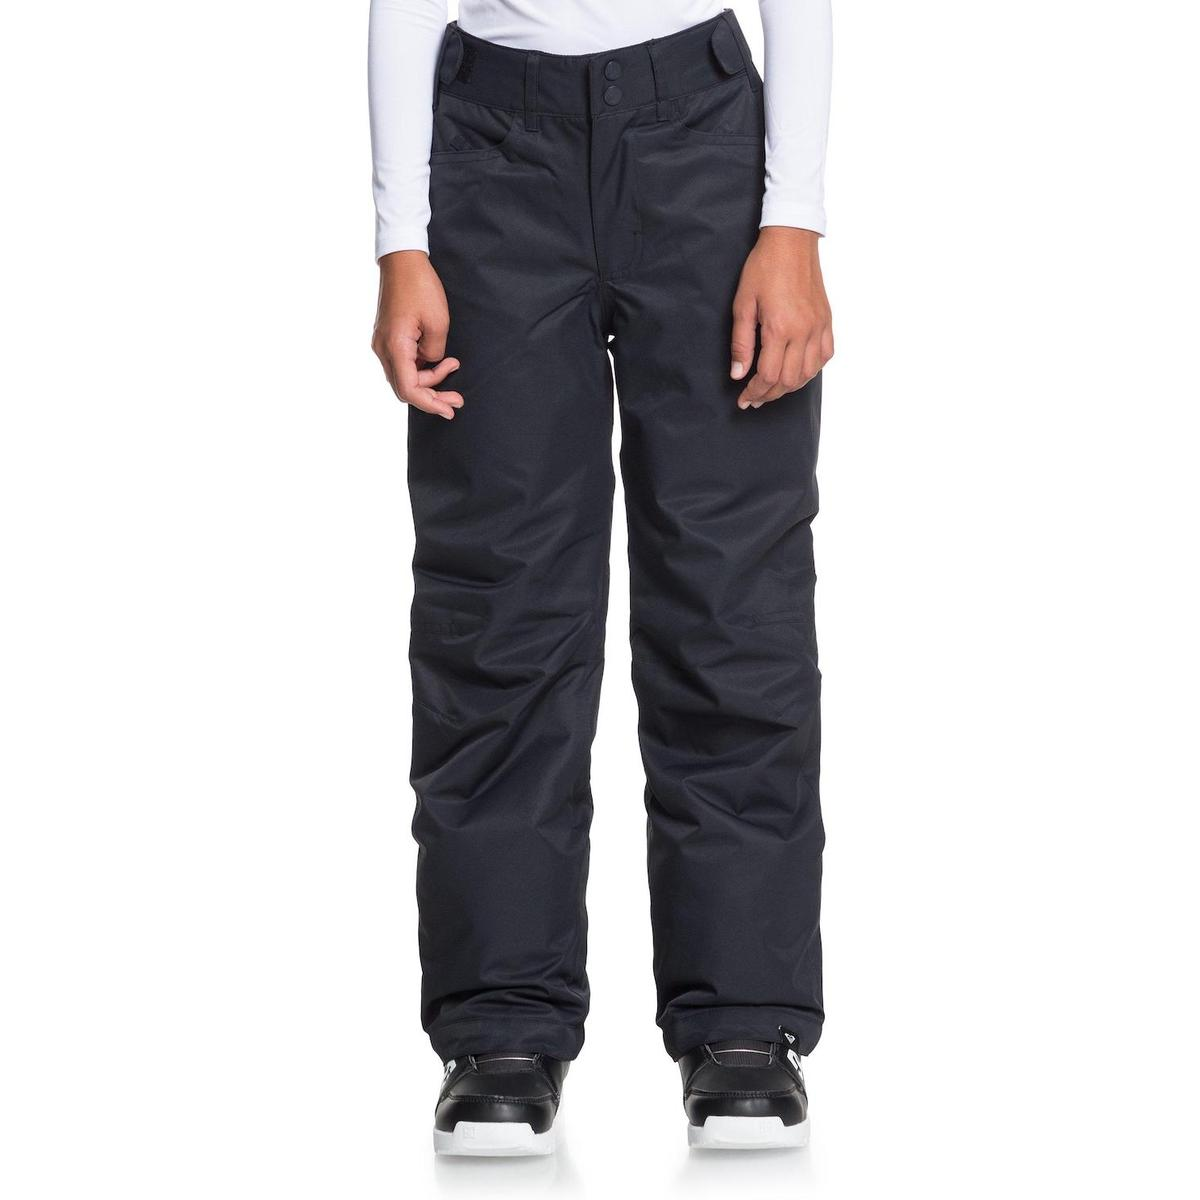 Roxy Backyard Girls Snow Pants